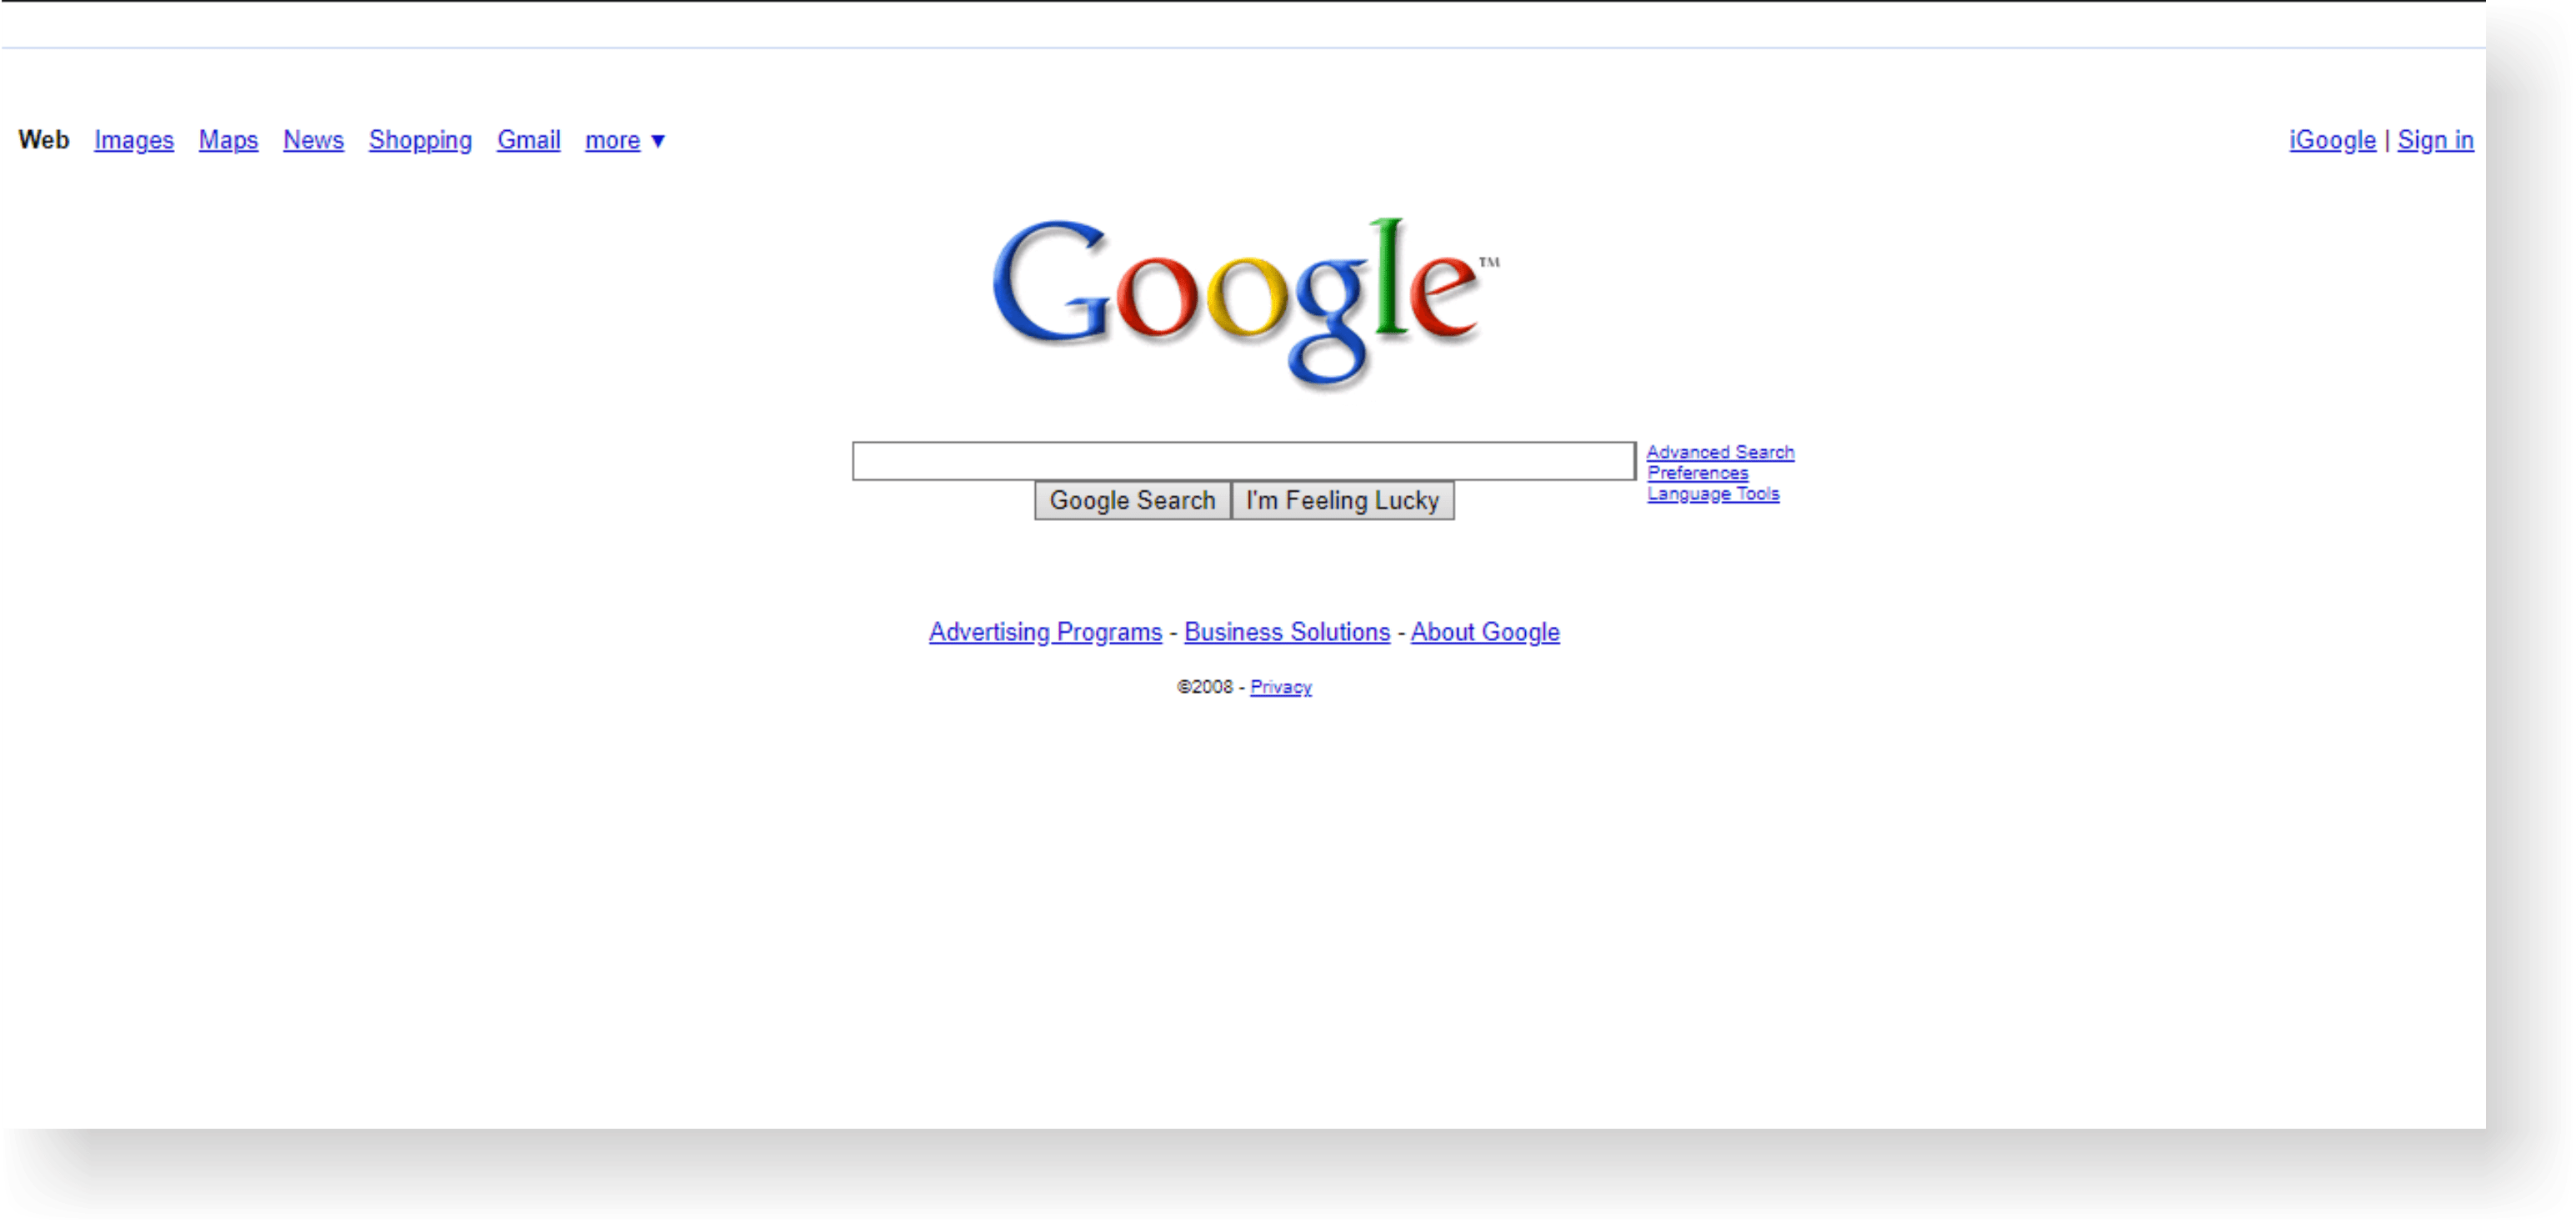 google site history from internet archive on 2008